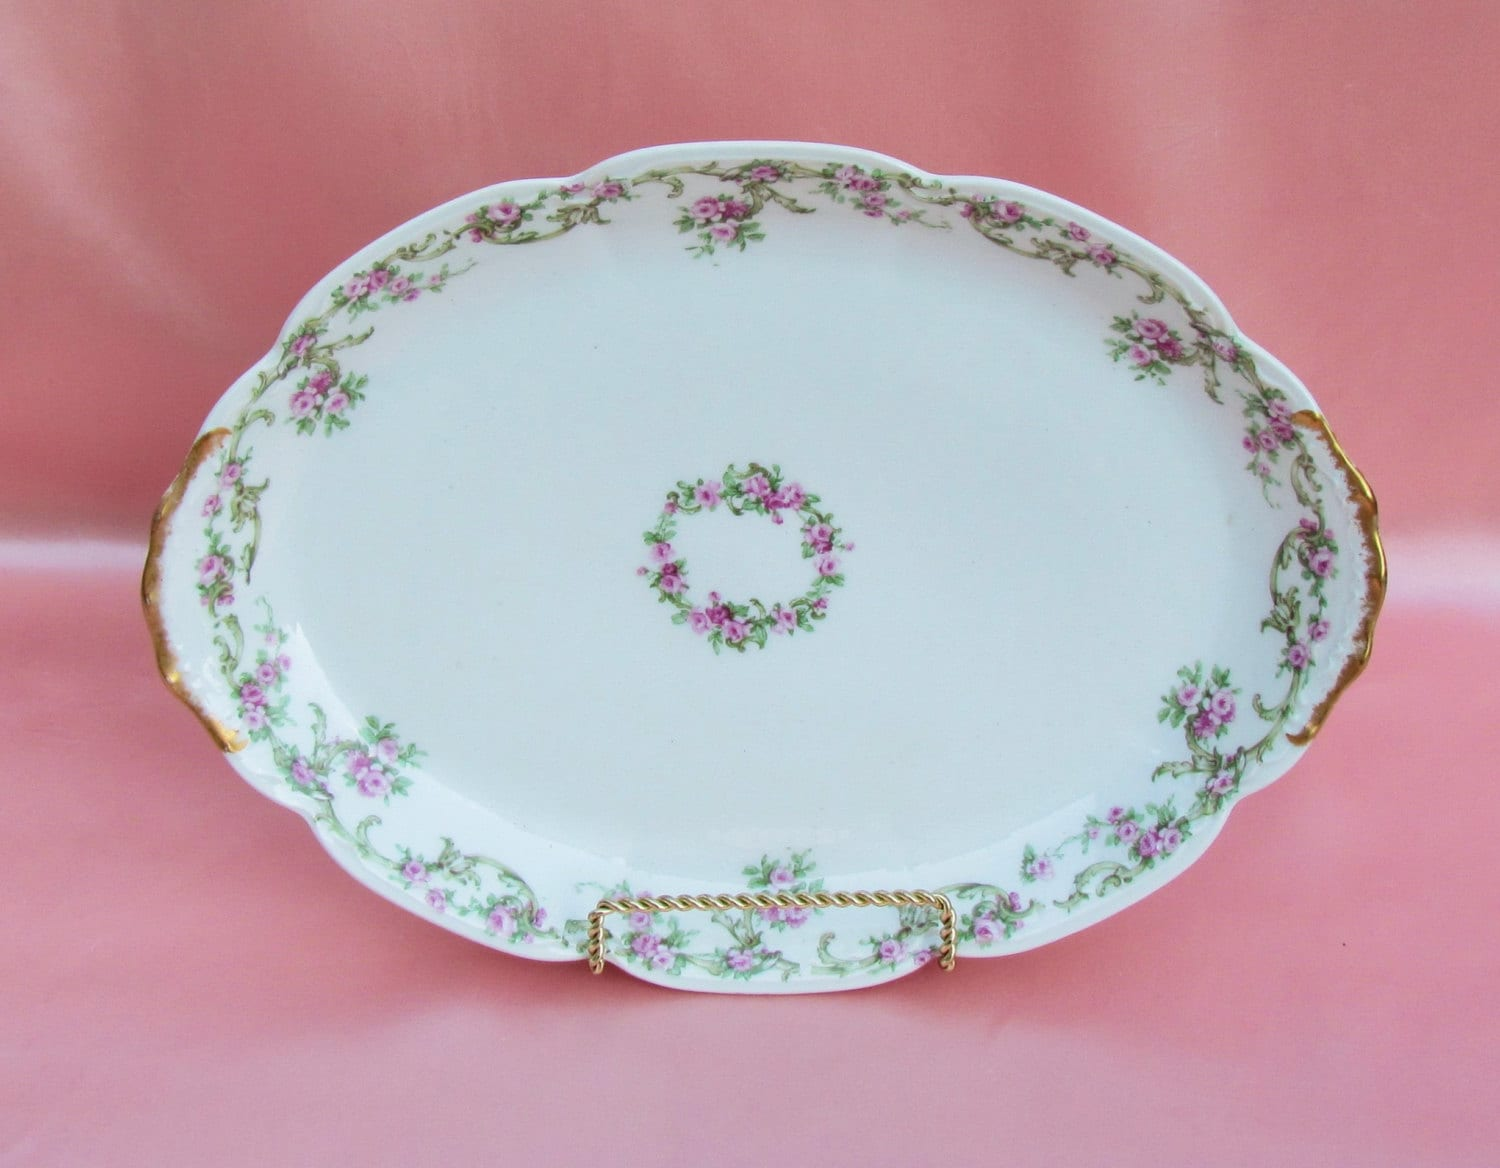 Limoges China Platter With Pink Roses Small Size Porcelain Etsy